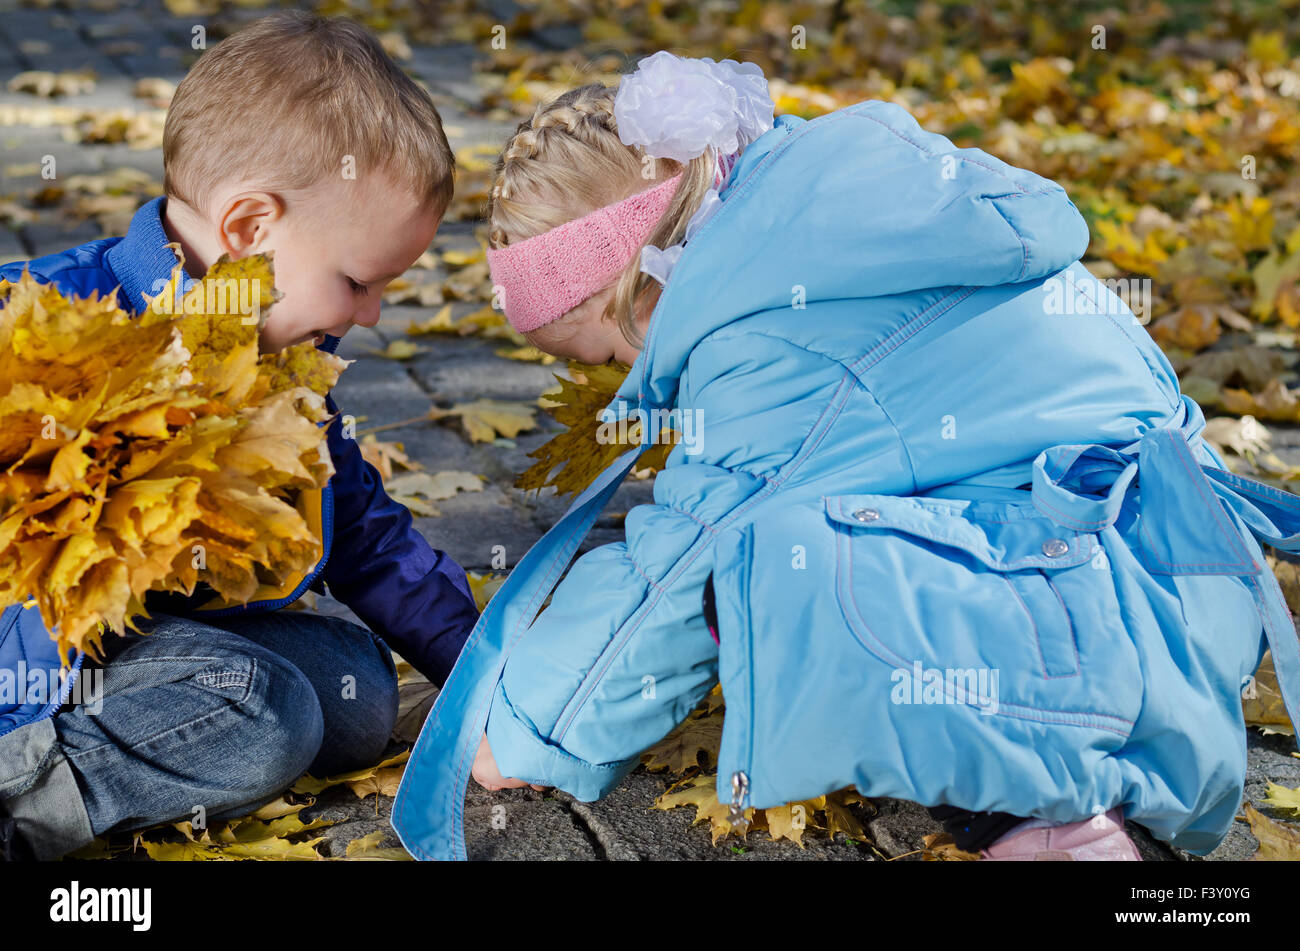 Children playing in autumn leaves - Stock Image